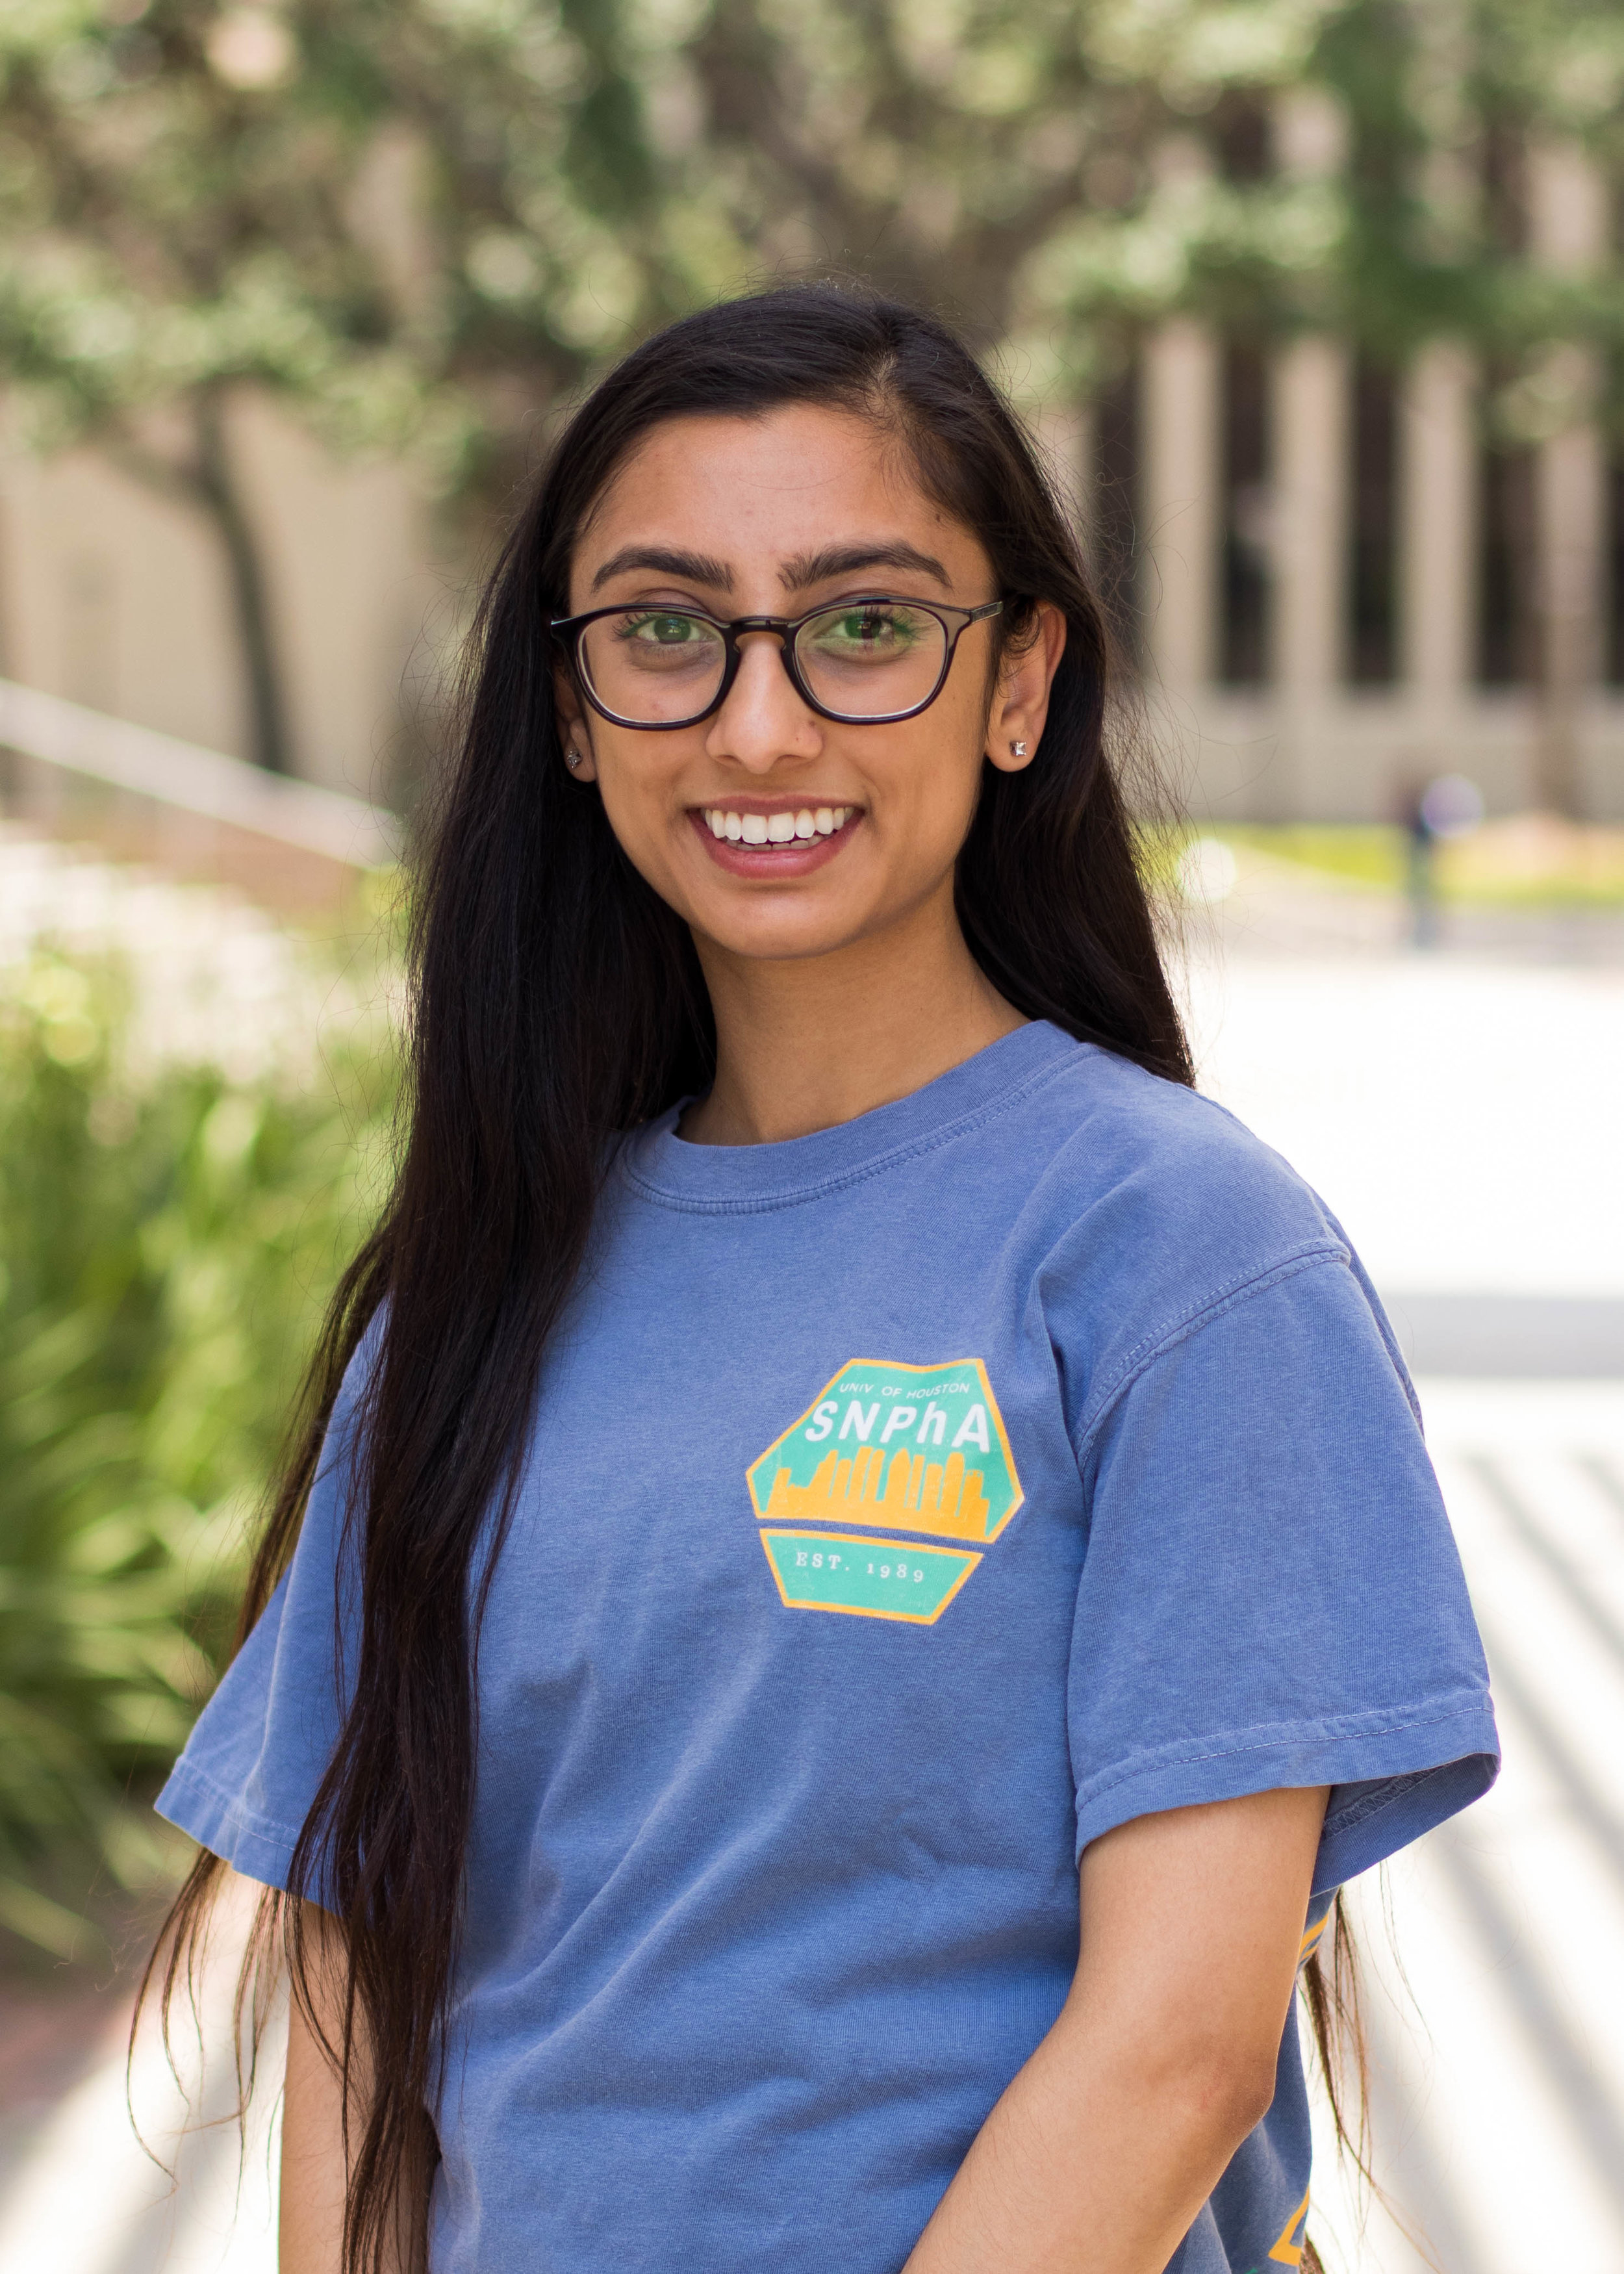 Why did you choose SNPhA?    I choose SNPhA because it has always gone above and beyond to helping the community and having an impact on others.